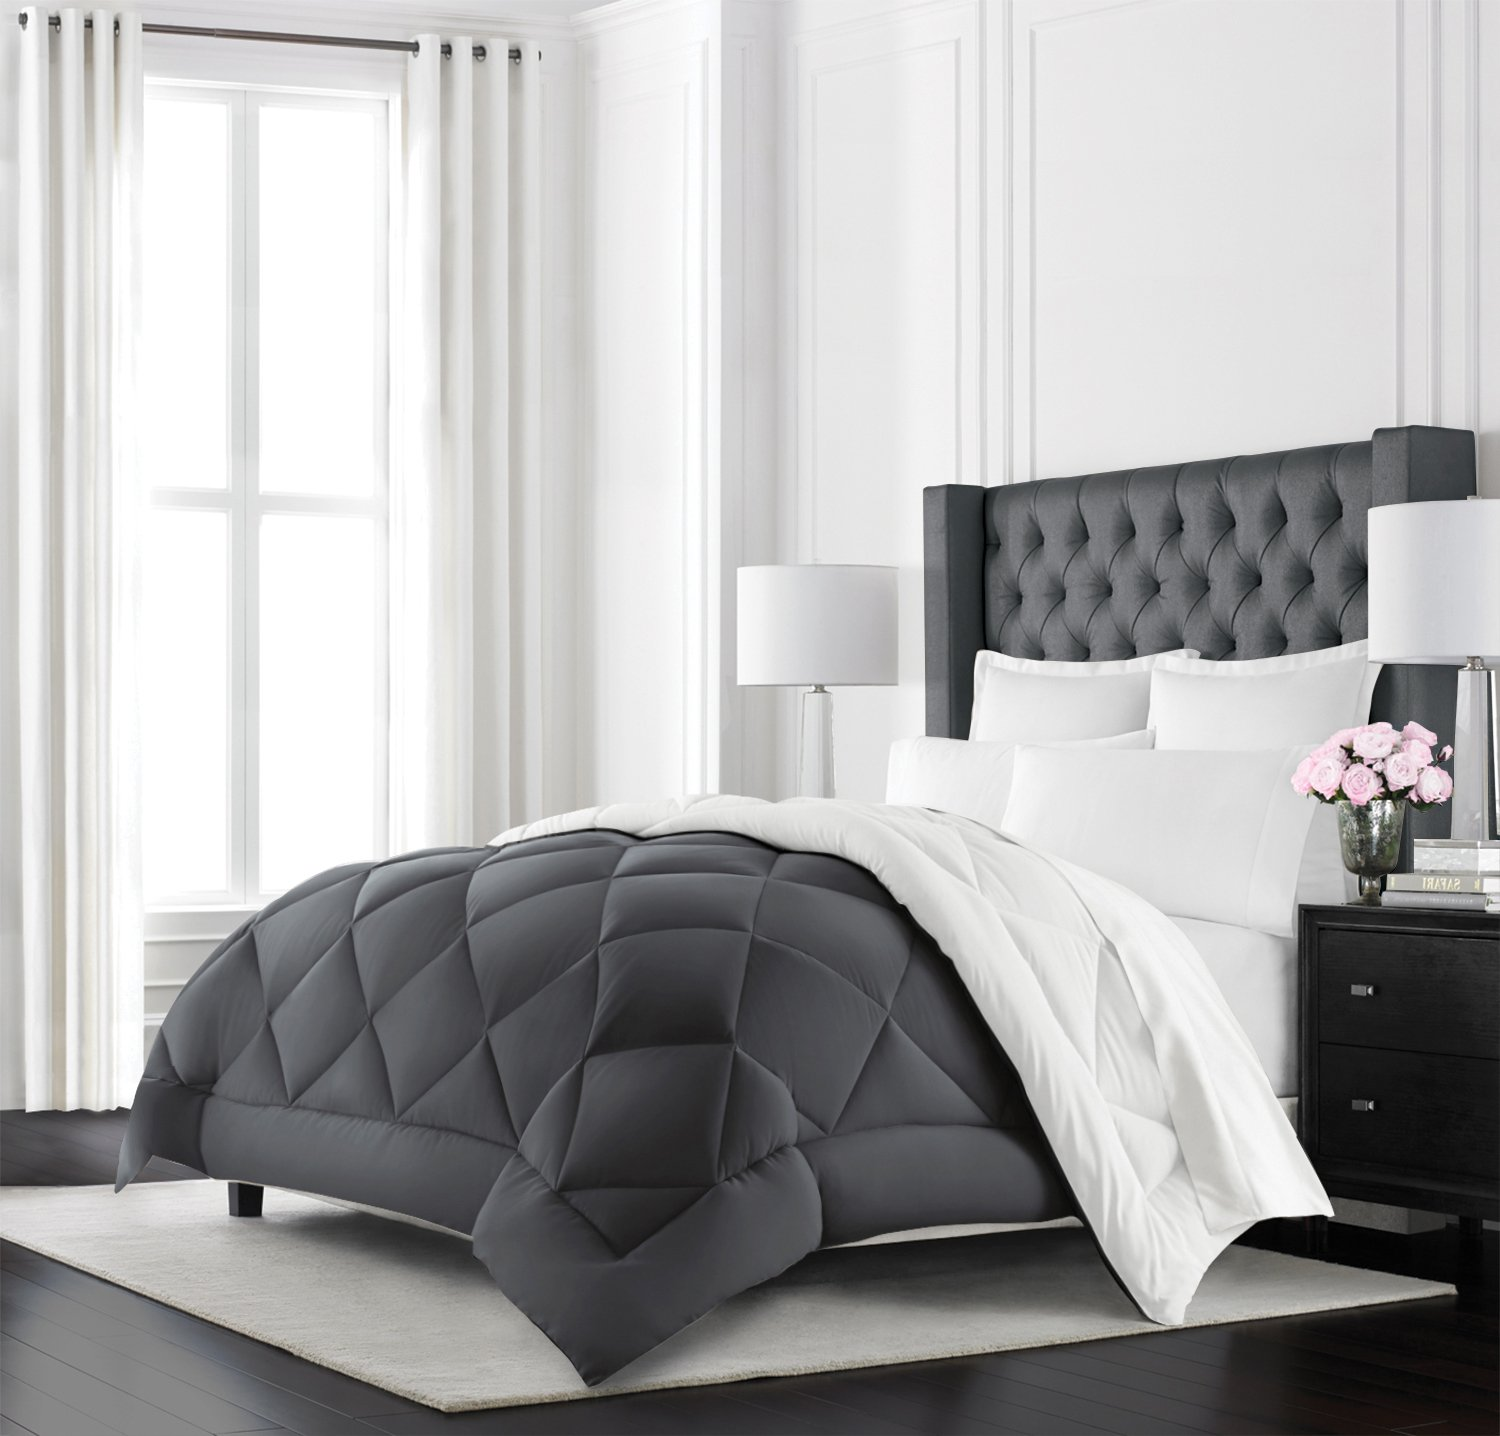 Fine and luxury bedding sets sale ease bedding with style - Beautiful snooze bedroom suites packing comfort in style ...